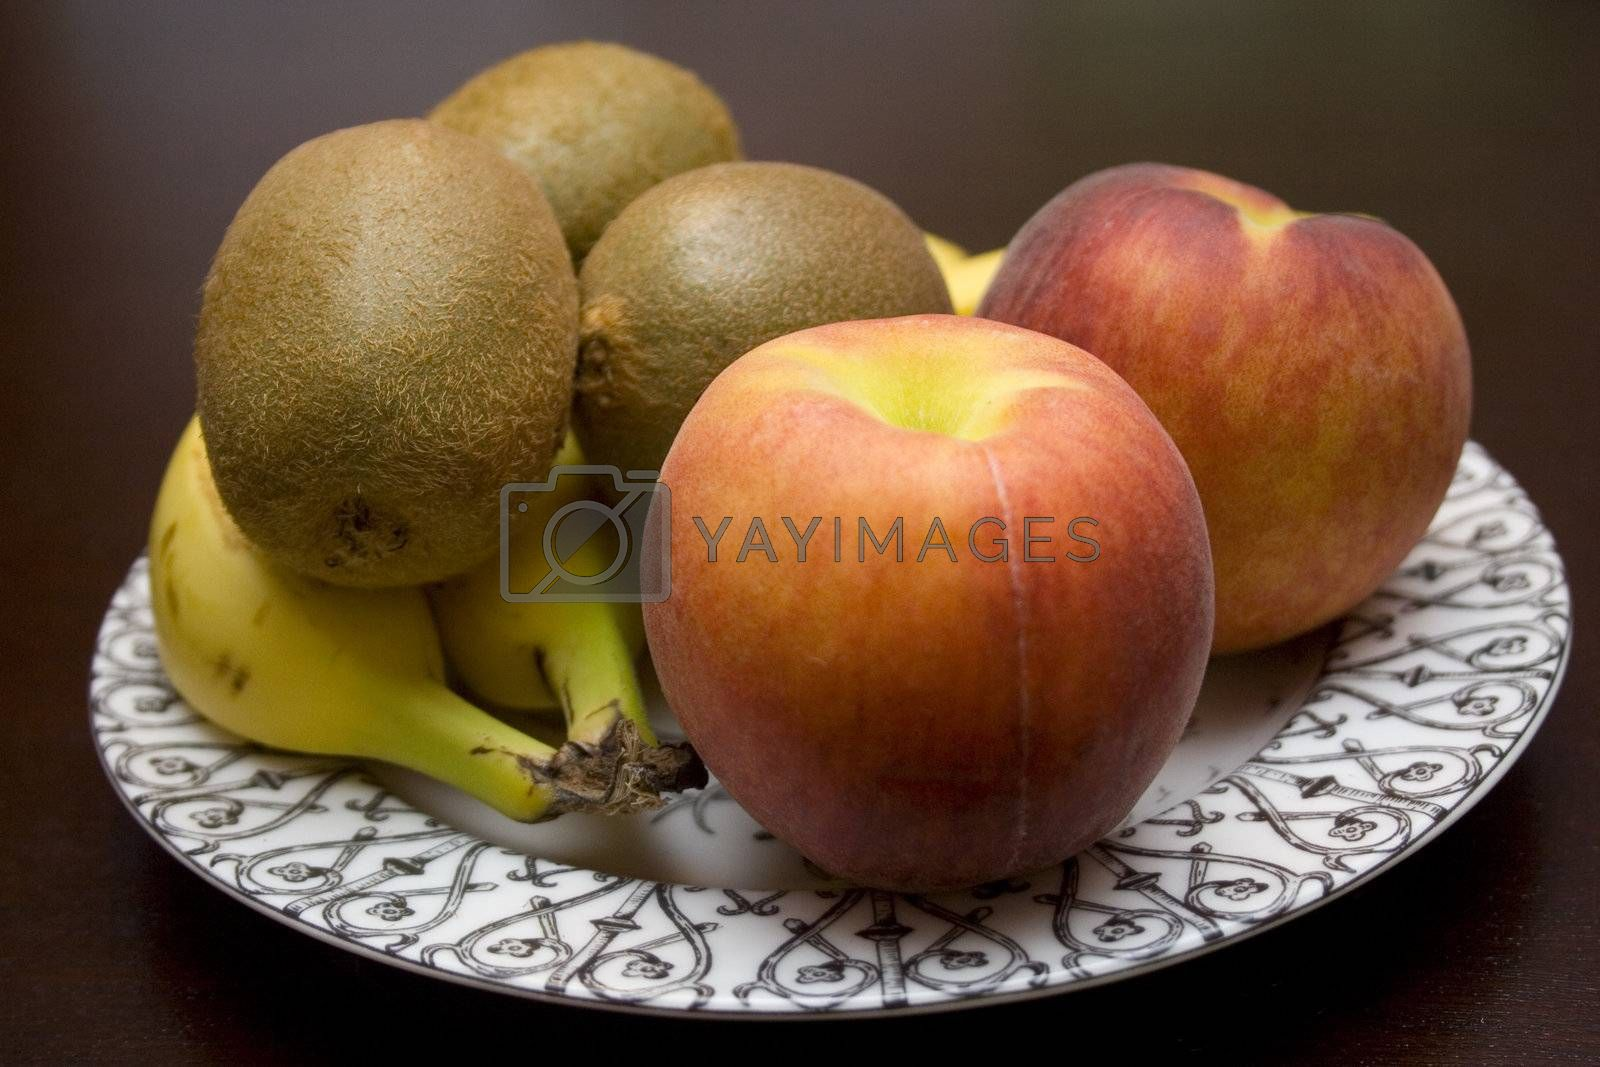 Plate of Fruit by jclardy